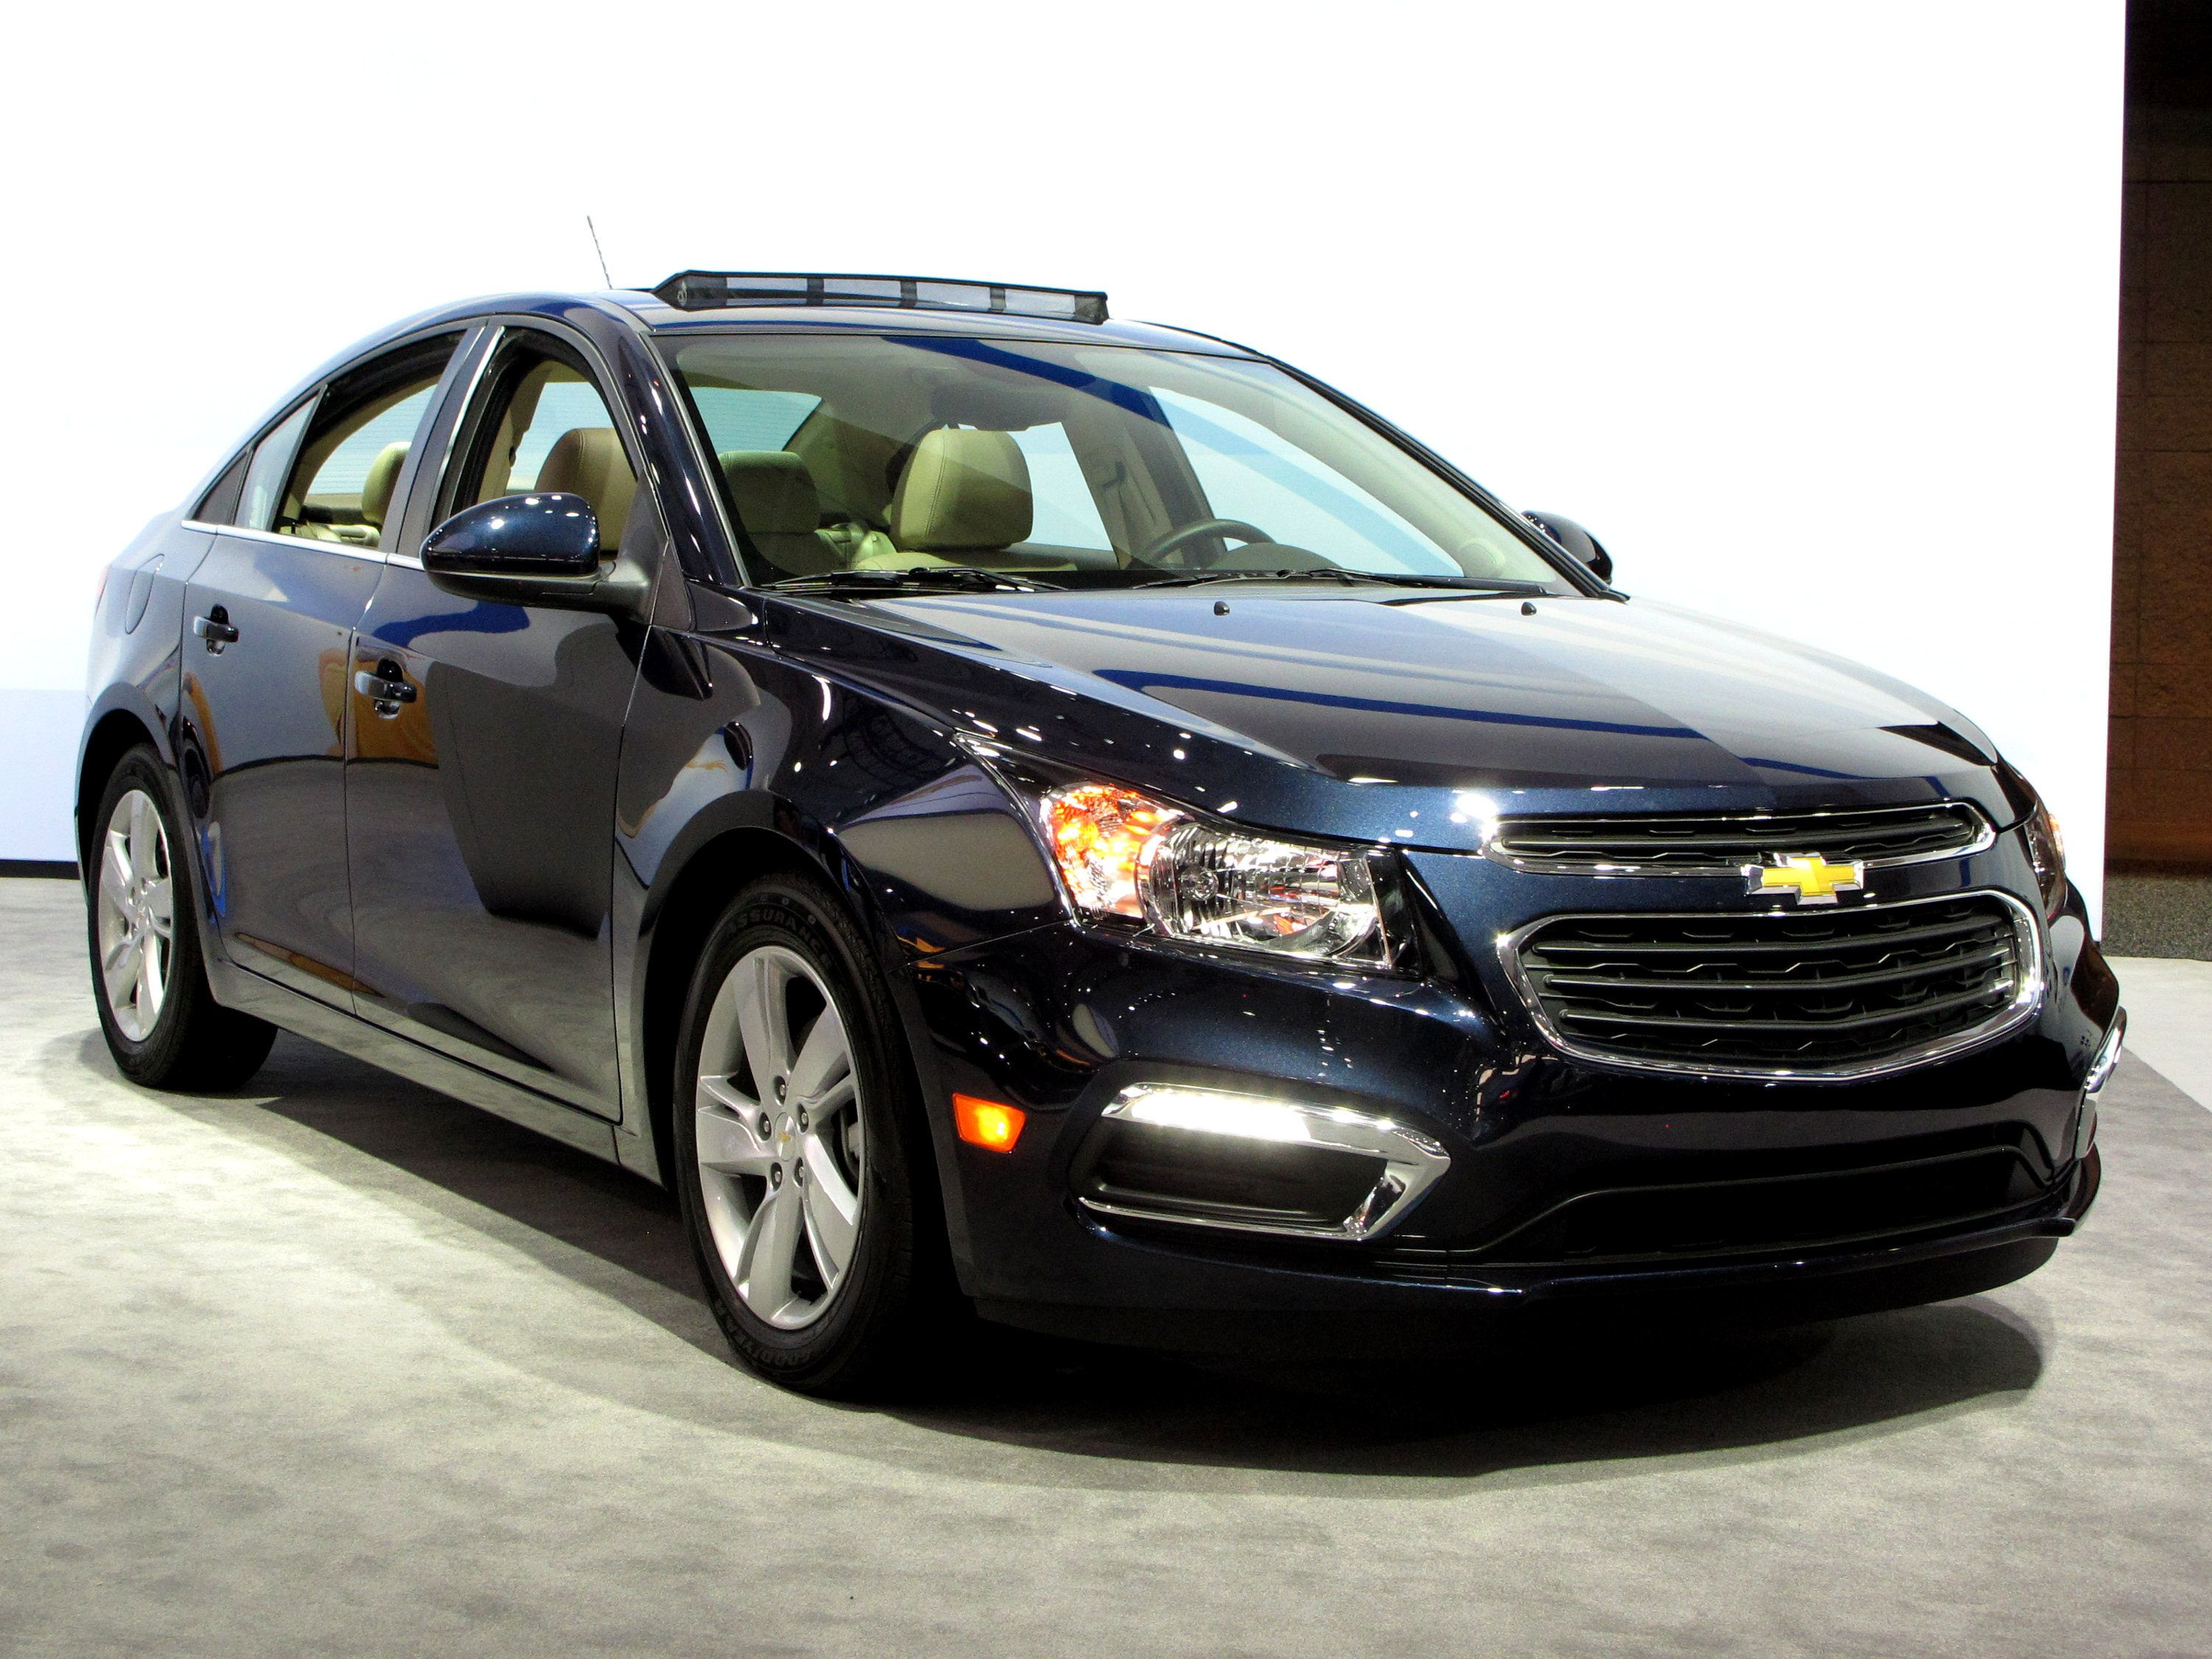 team journey chevypic to cruze forum bhp accessories chevrolet personalise my modifications